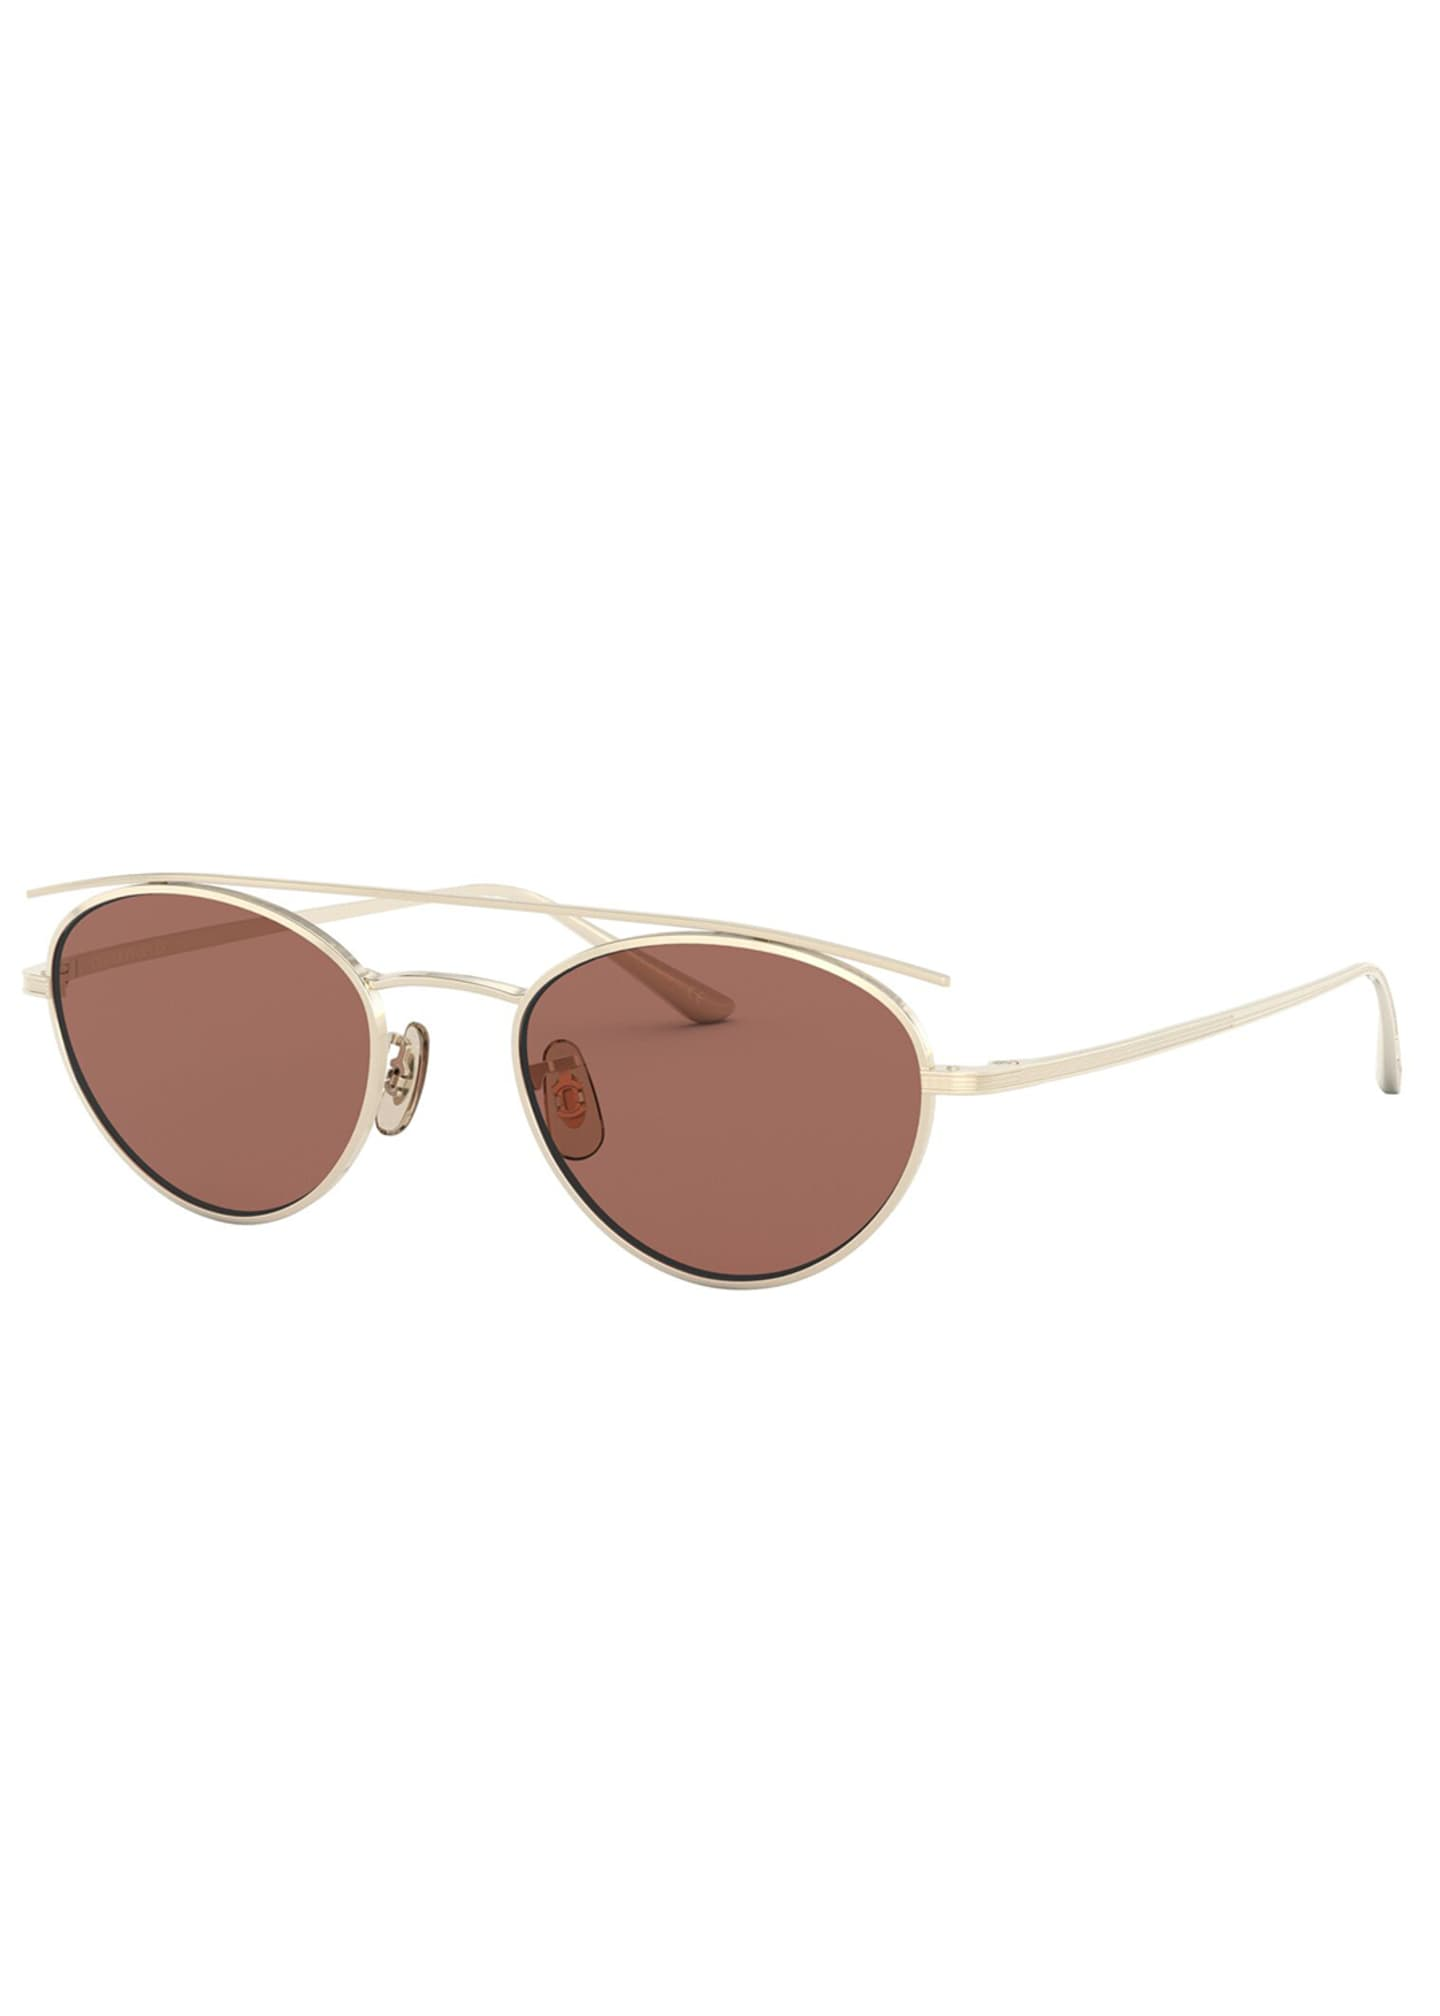 Image 1 of 2: Hightree Titanium Oval Sunglasses